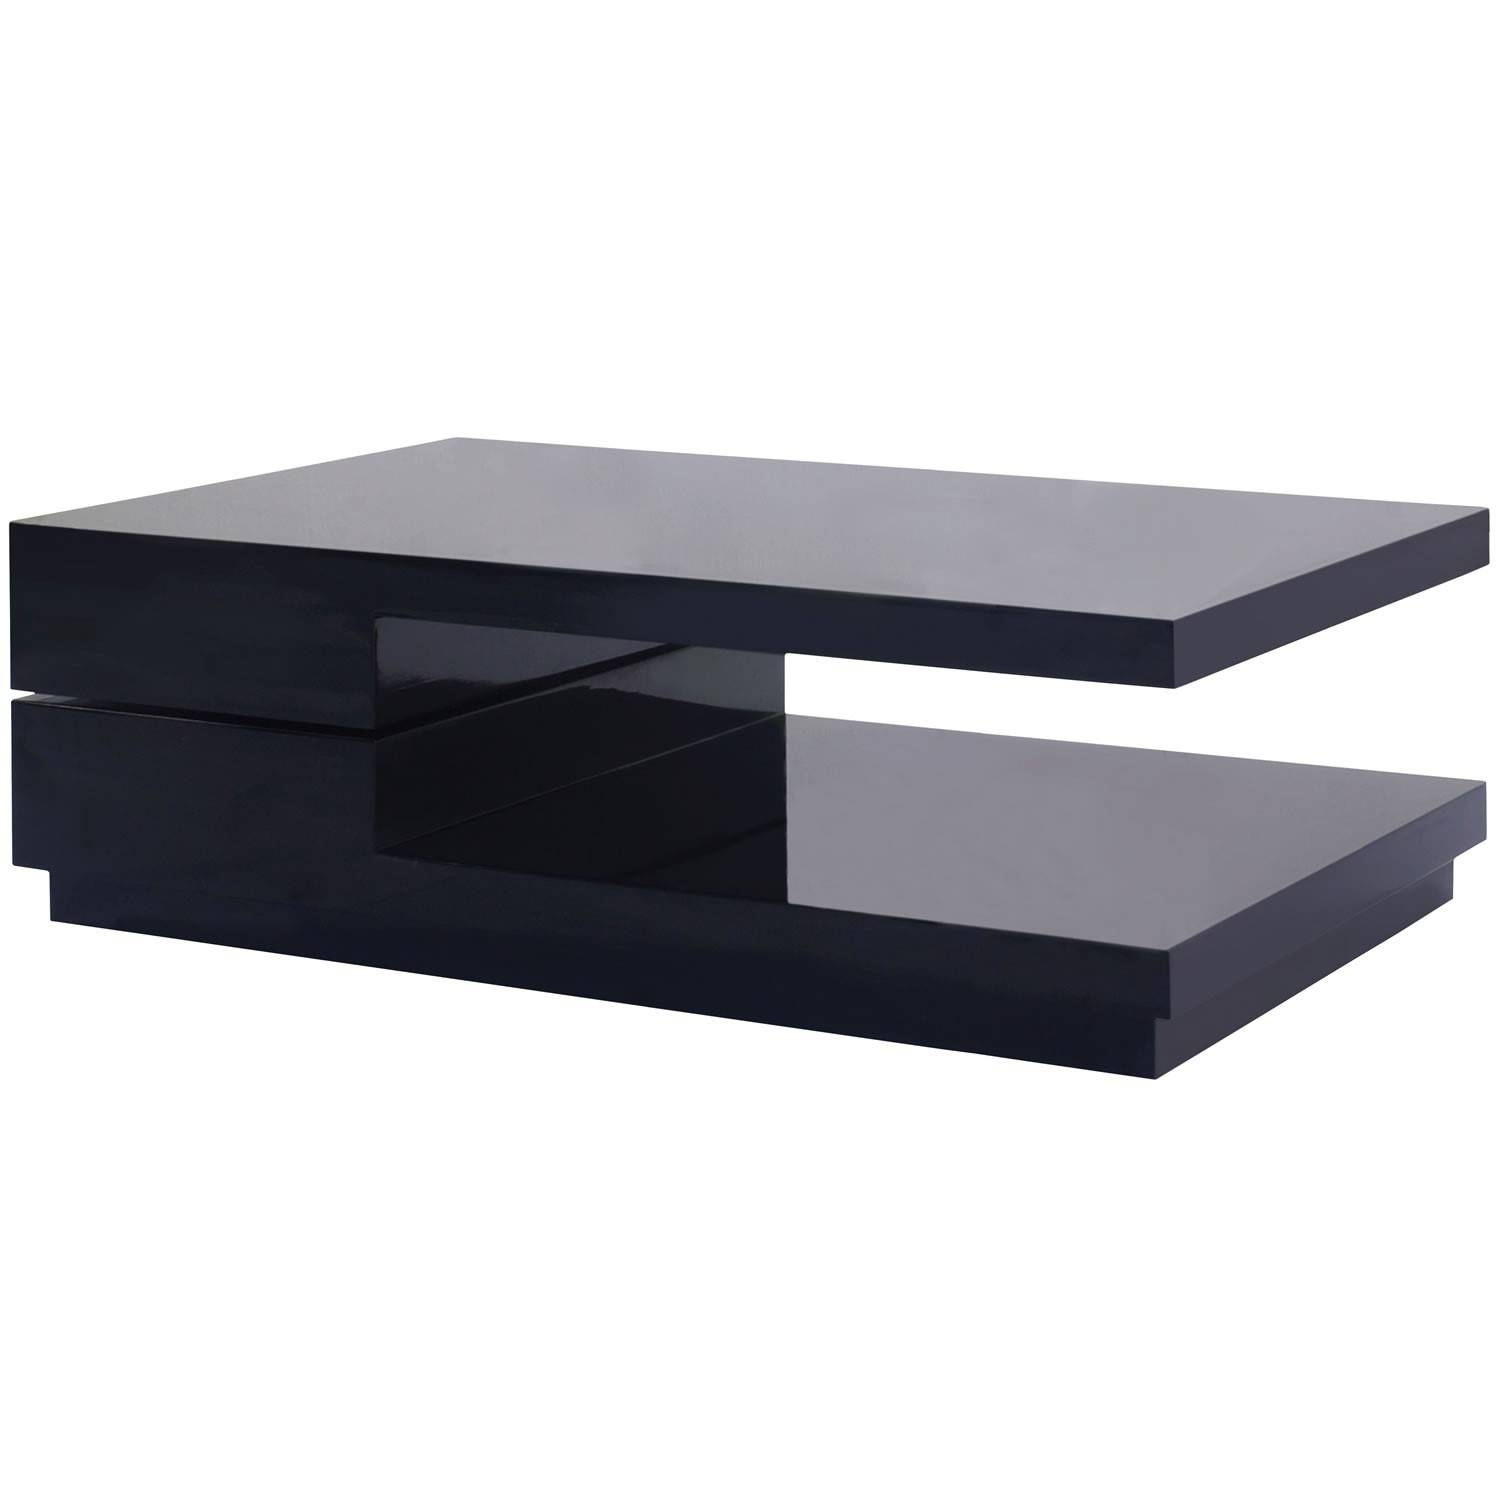 Furniture. Black Modern Coffee Table Design Ideas: Low Rectangular pertaining to Low Rectangular Coffee Tables (Image 14 of 30)